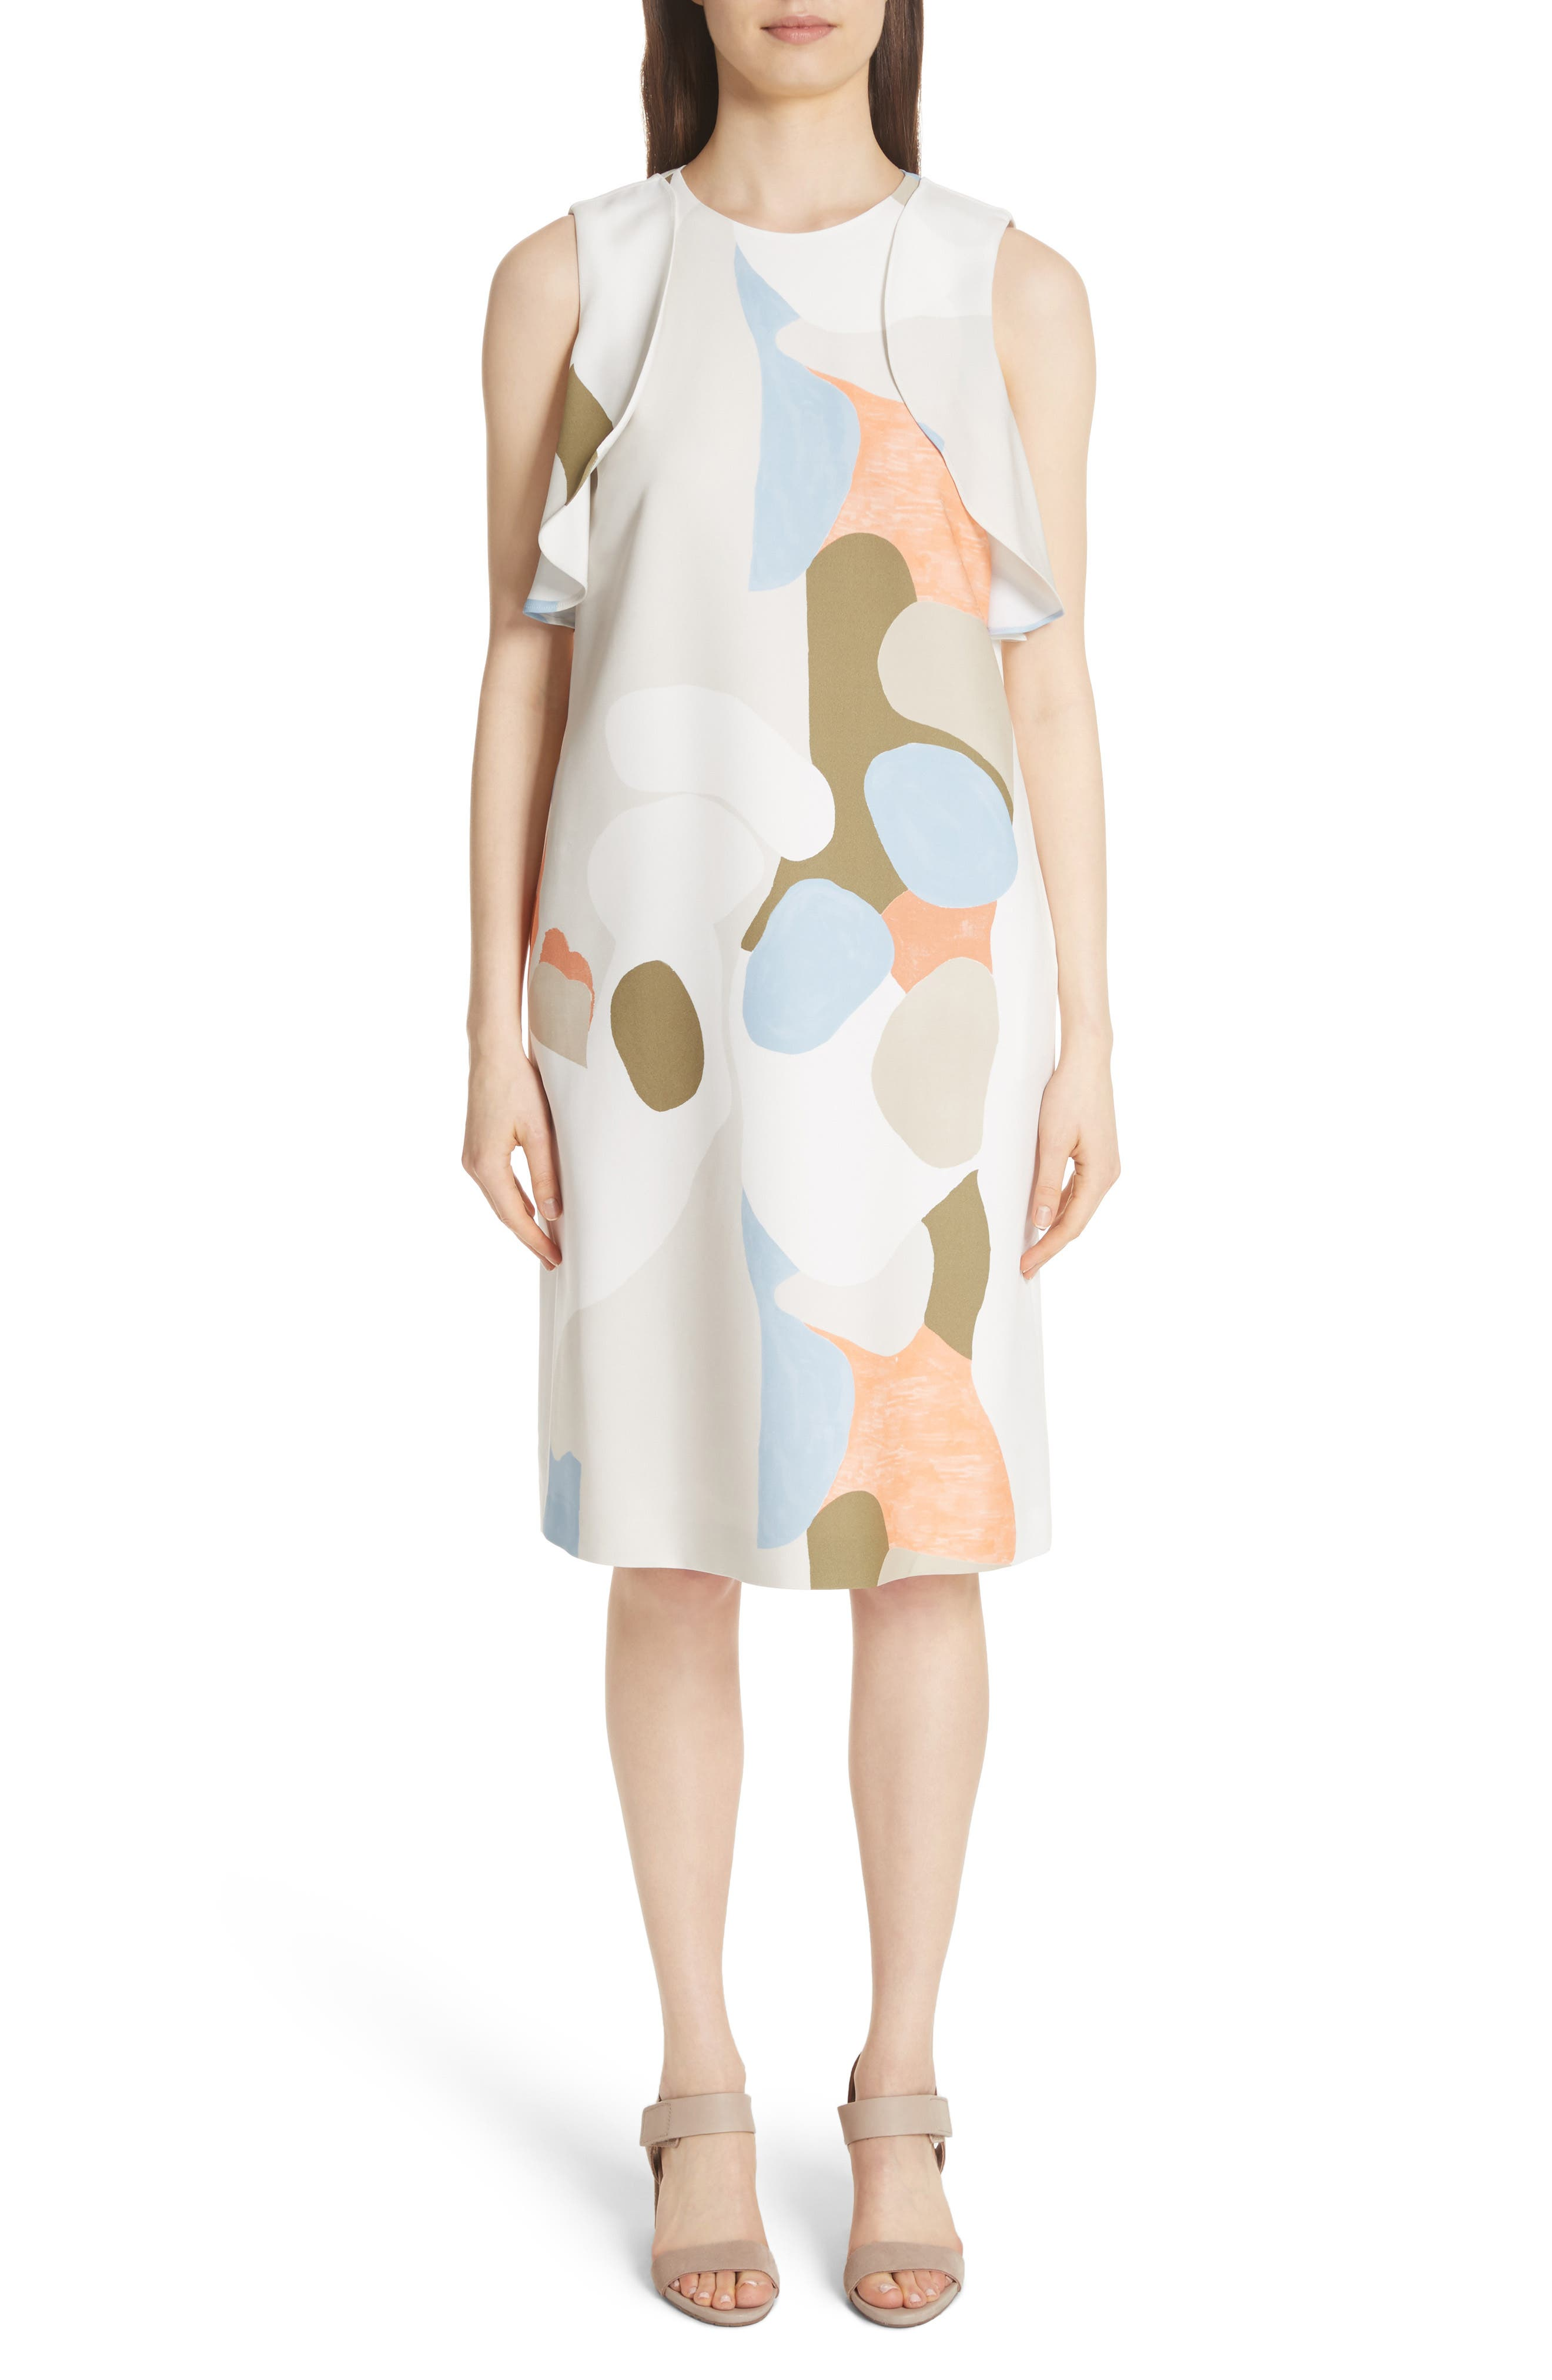 LAFAYETTE 148 NEW YORK,                             Landscape Expression Print Ruffle Dress,                             Main thumbnail 1, color,                             909